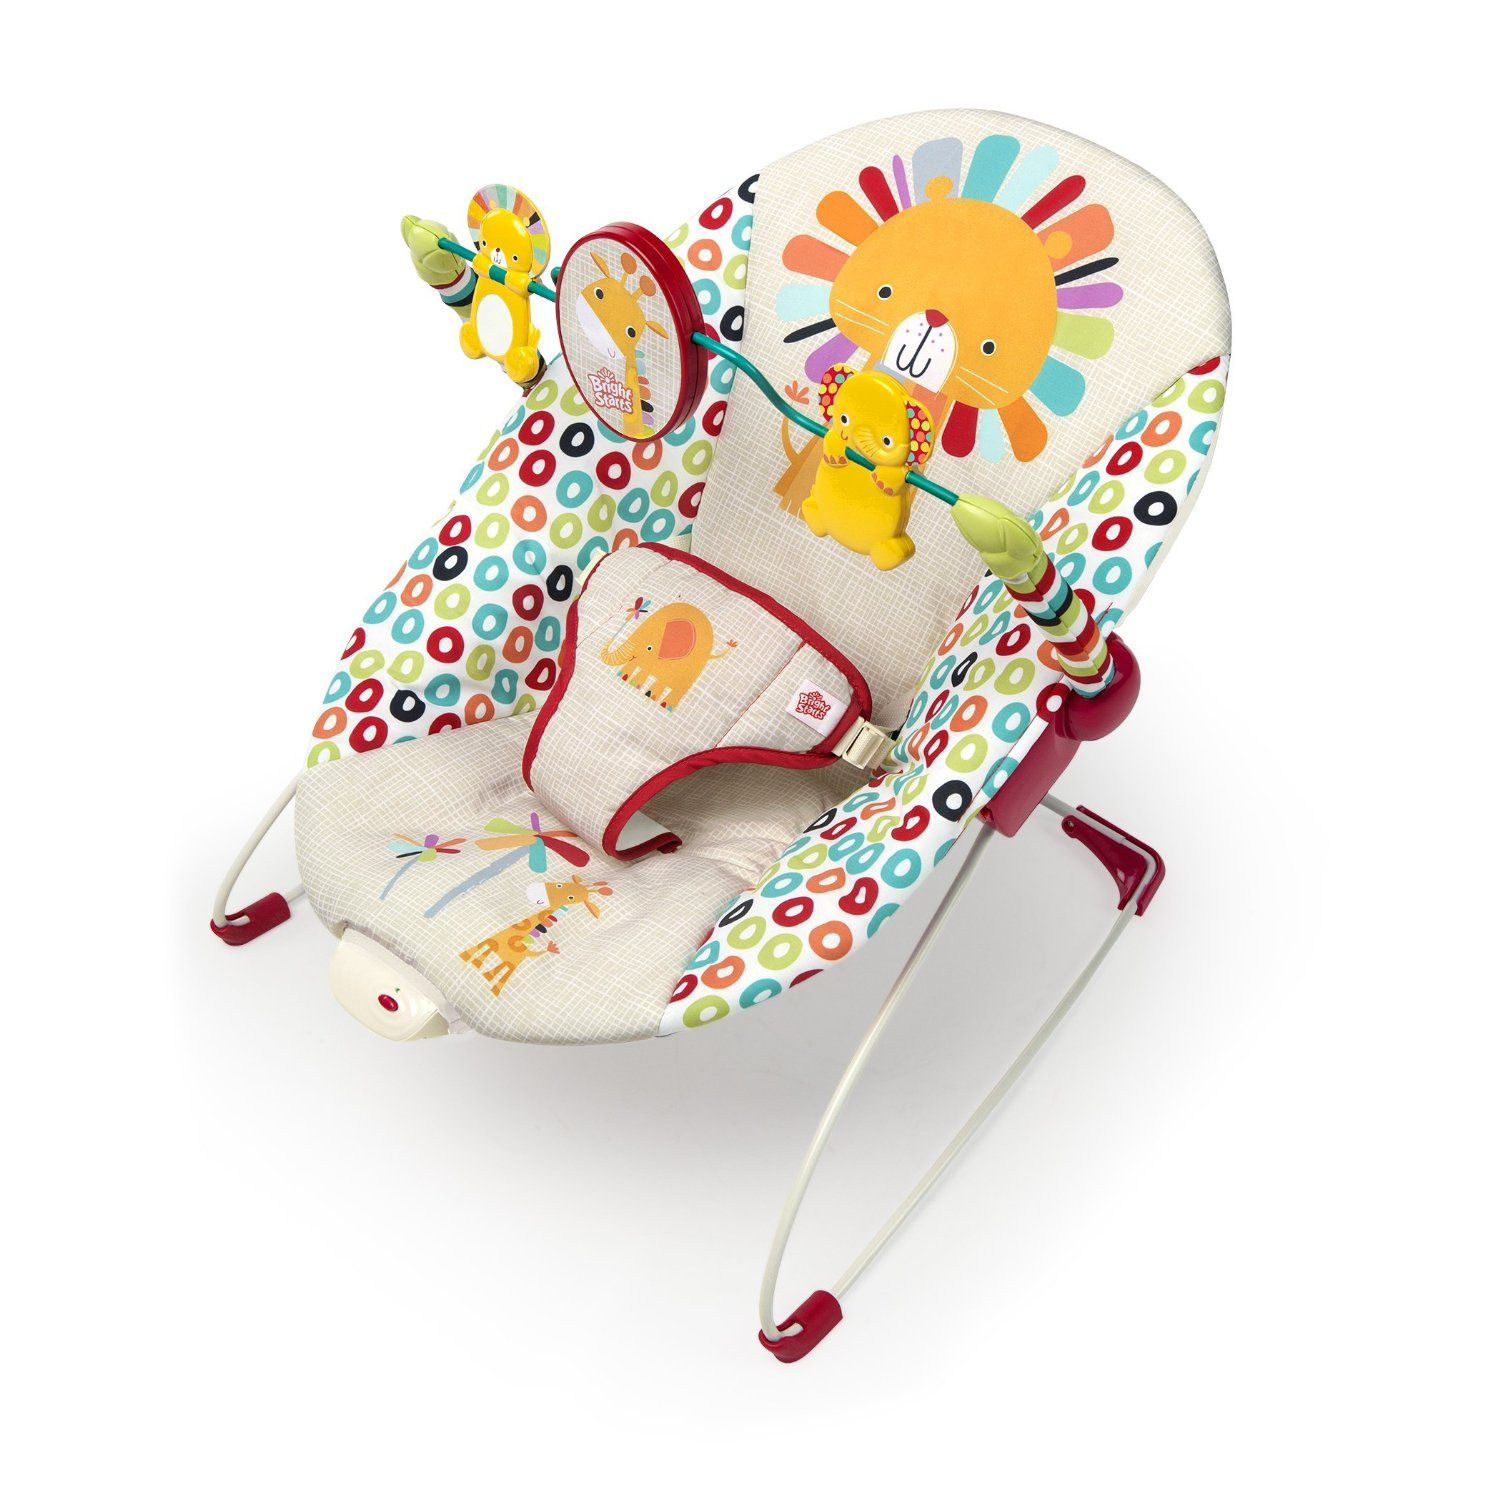 Bright Starts Playful Pinwheels Bouncer ly $17 84 reg $32 99